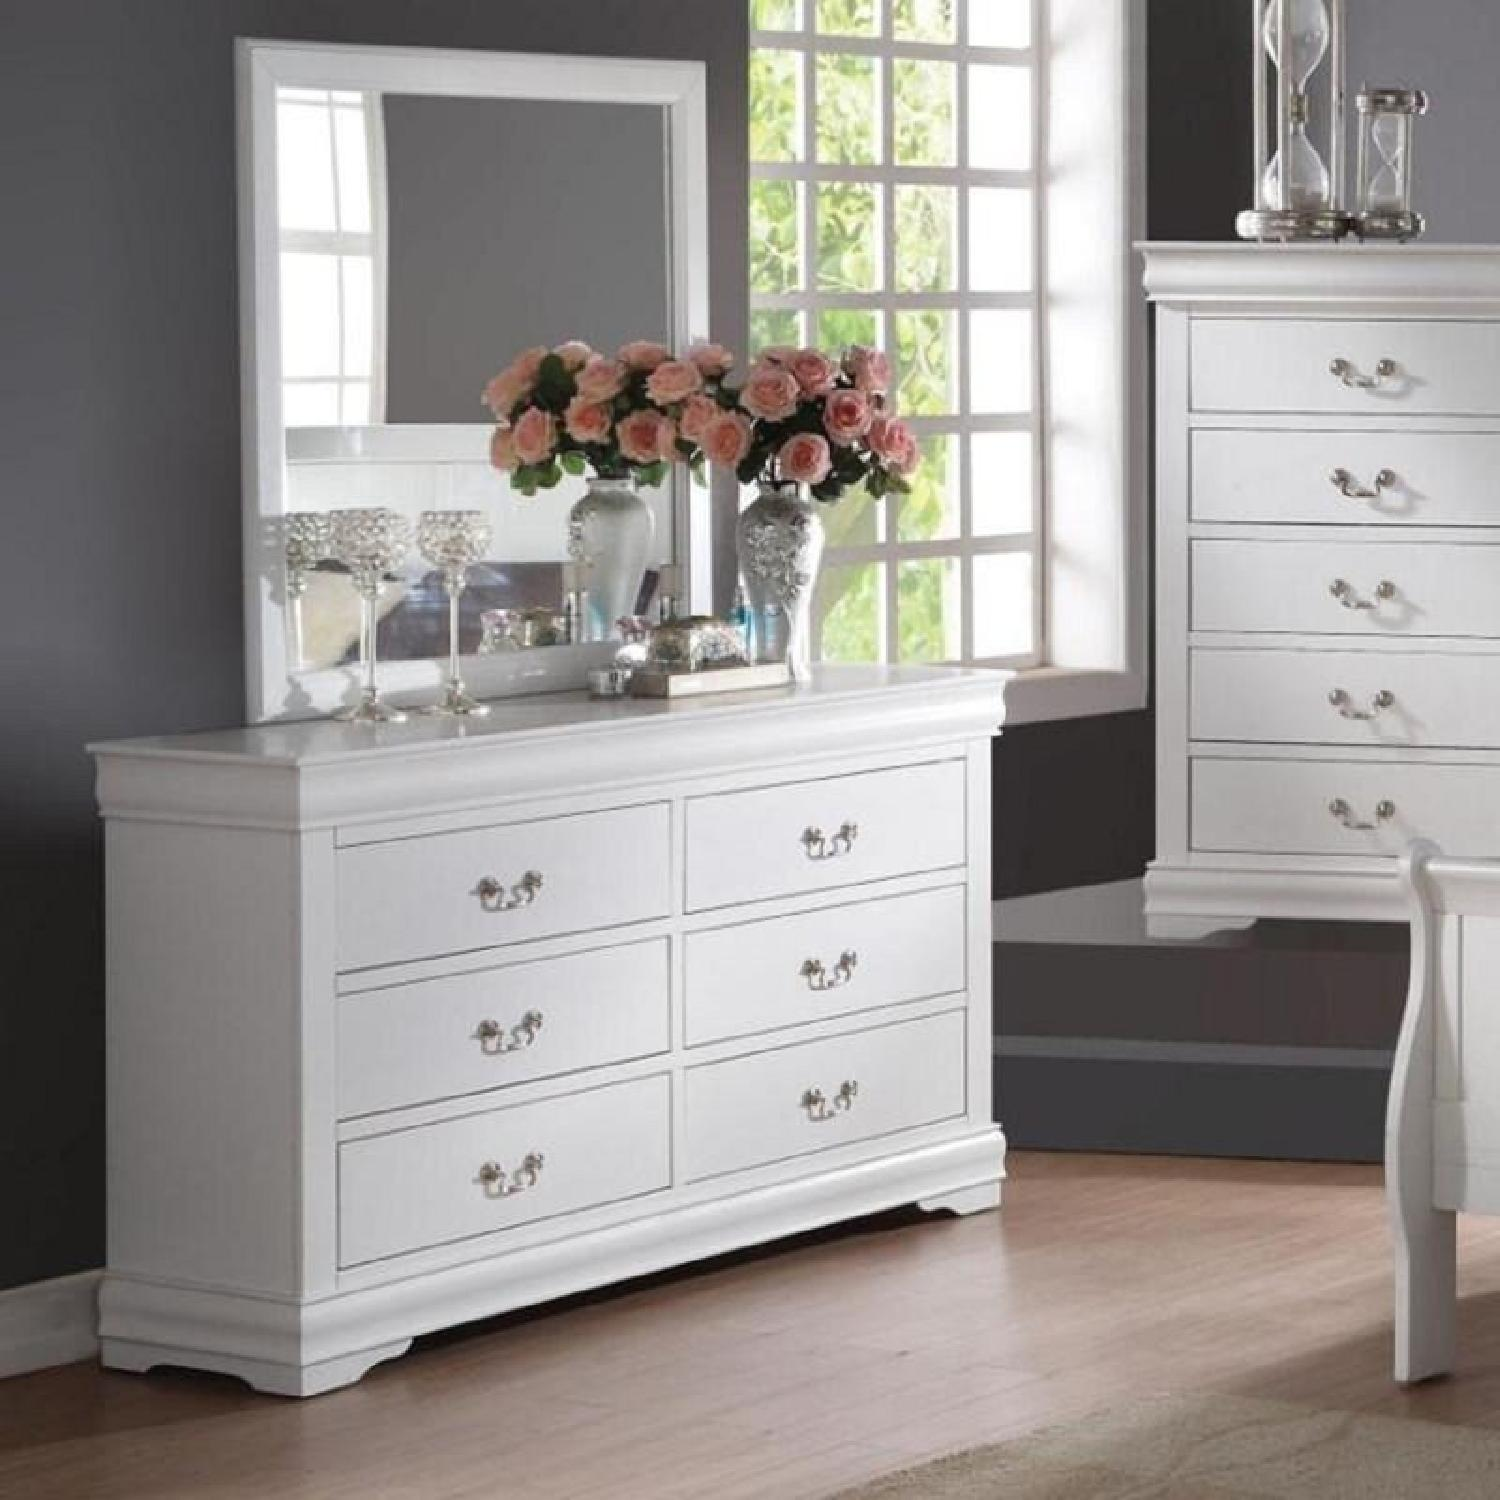 Large 6 Drawer Dresser w Detachable Mirror - image-0